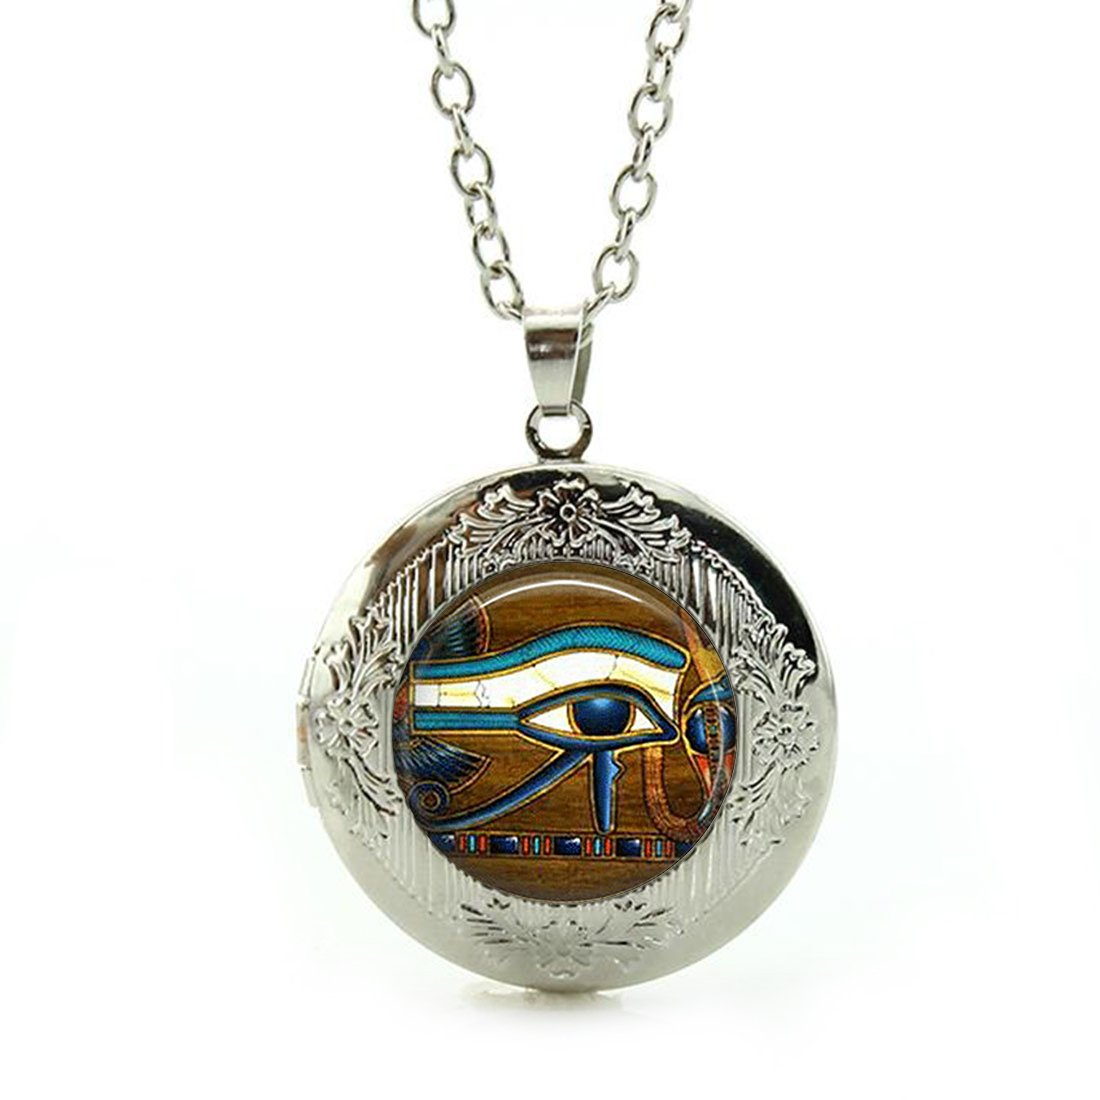 Custom Photo Glass Cabochon Pendant Necklace Tile Eye Of Horus Egyptian Eye Sterling Silver Plating Chain Circle Bead Choker Healing Amulet for Friends Gift